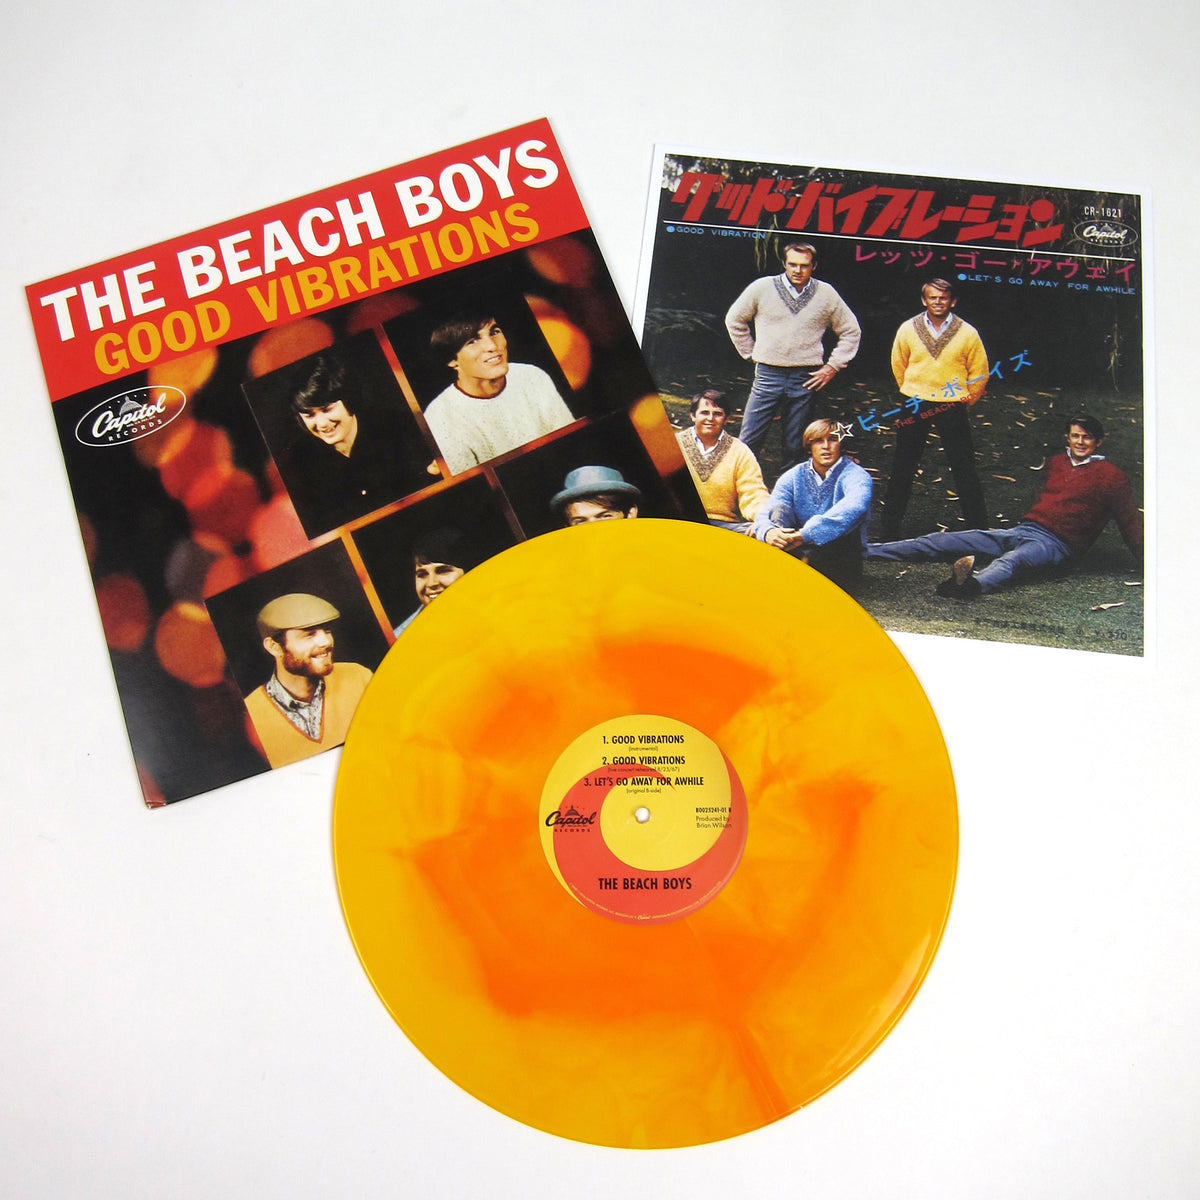 The Beach Boys: Good Vibrations (Colored Vinyl) Vinyl 12""